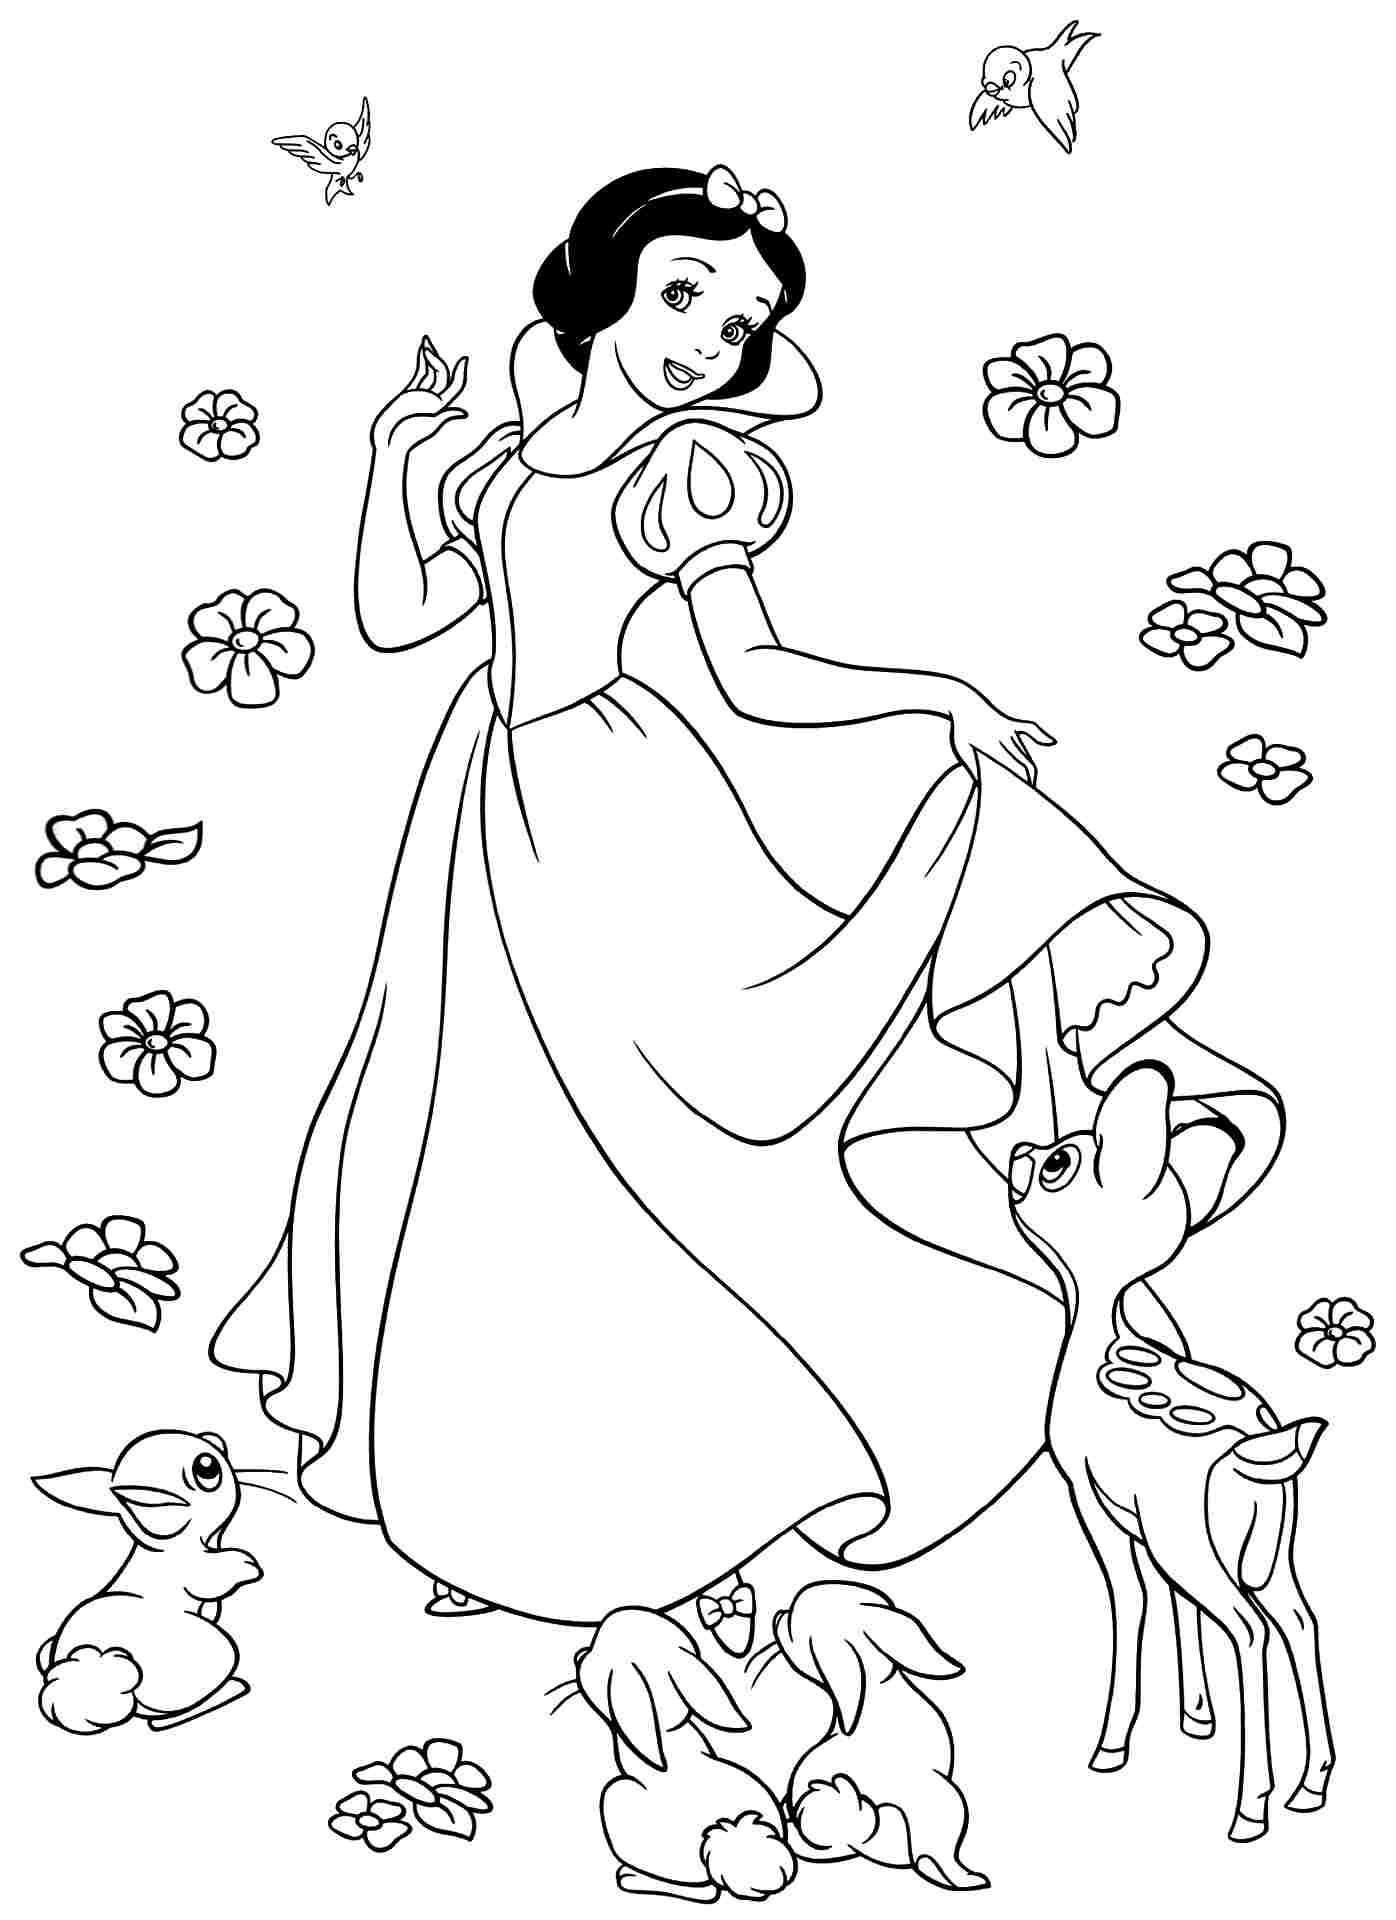 picture relating to Snow White Printable titled Snow White Coloring Webpages - Great Coloring Internet pages For Youngsters